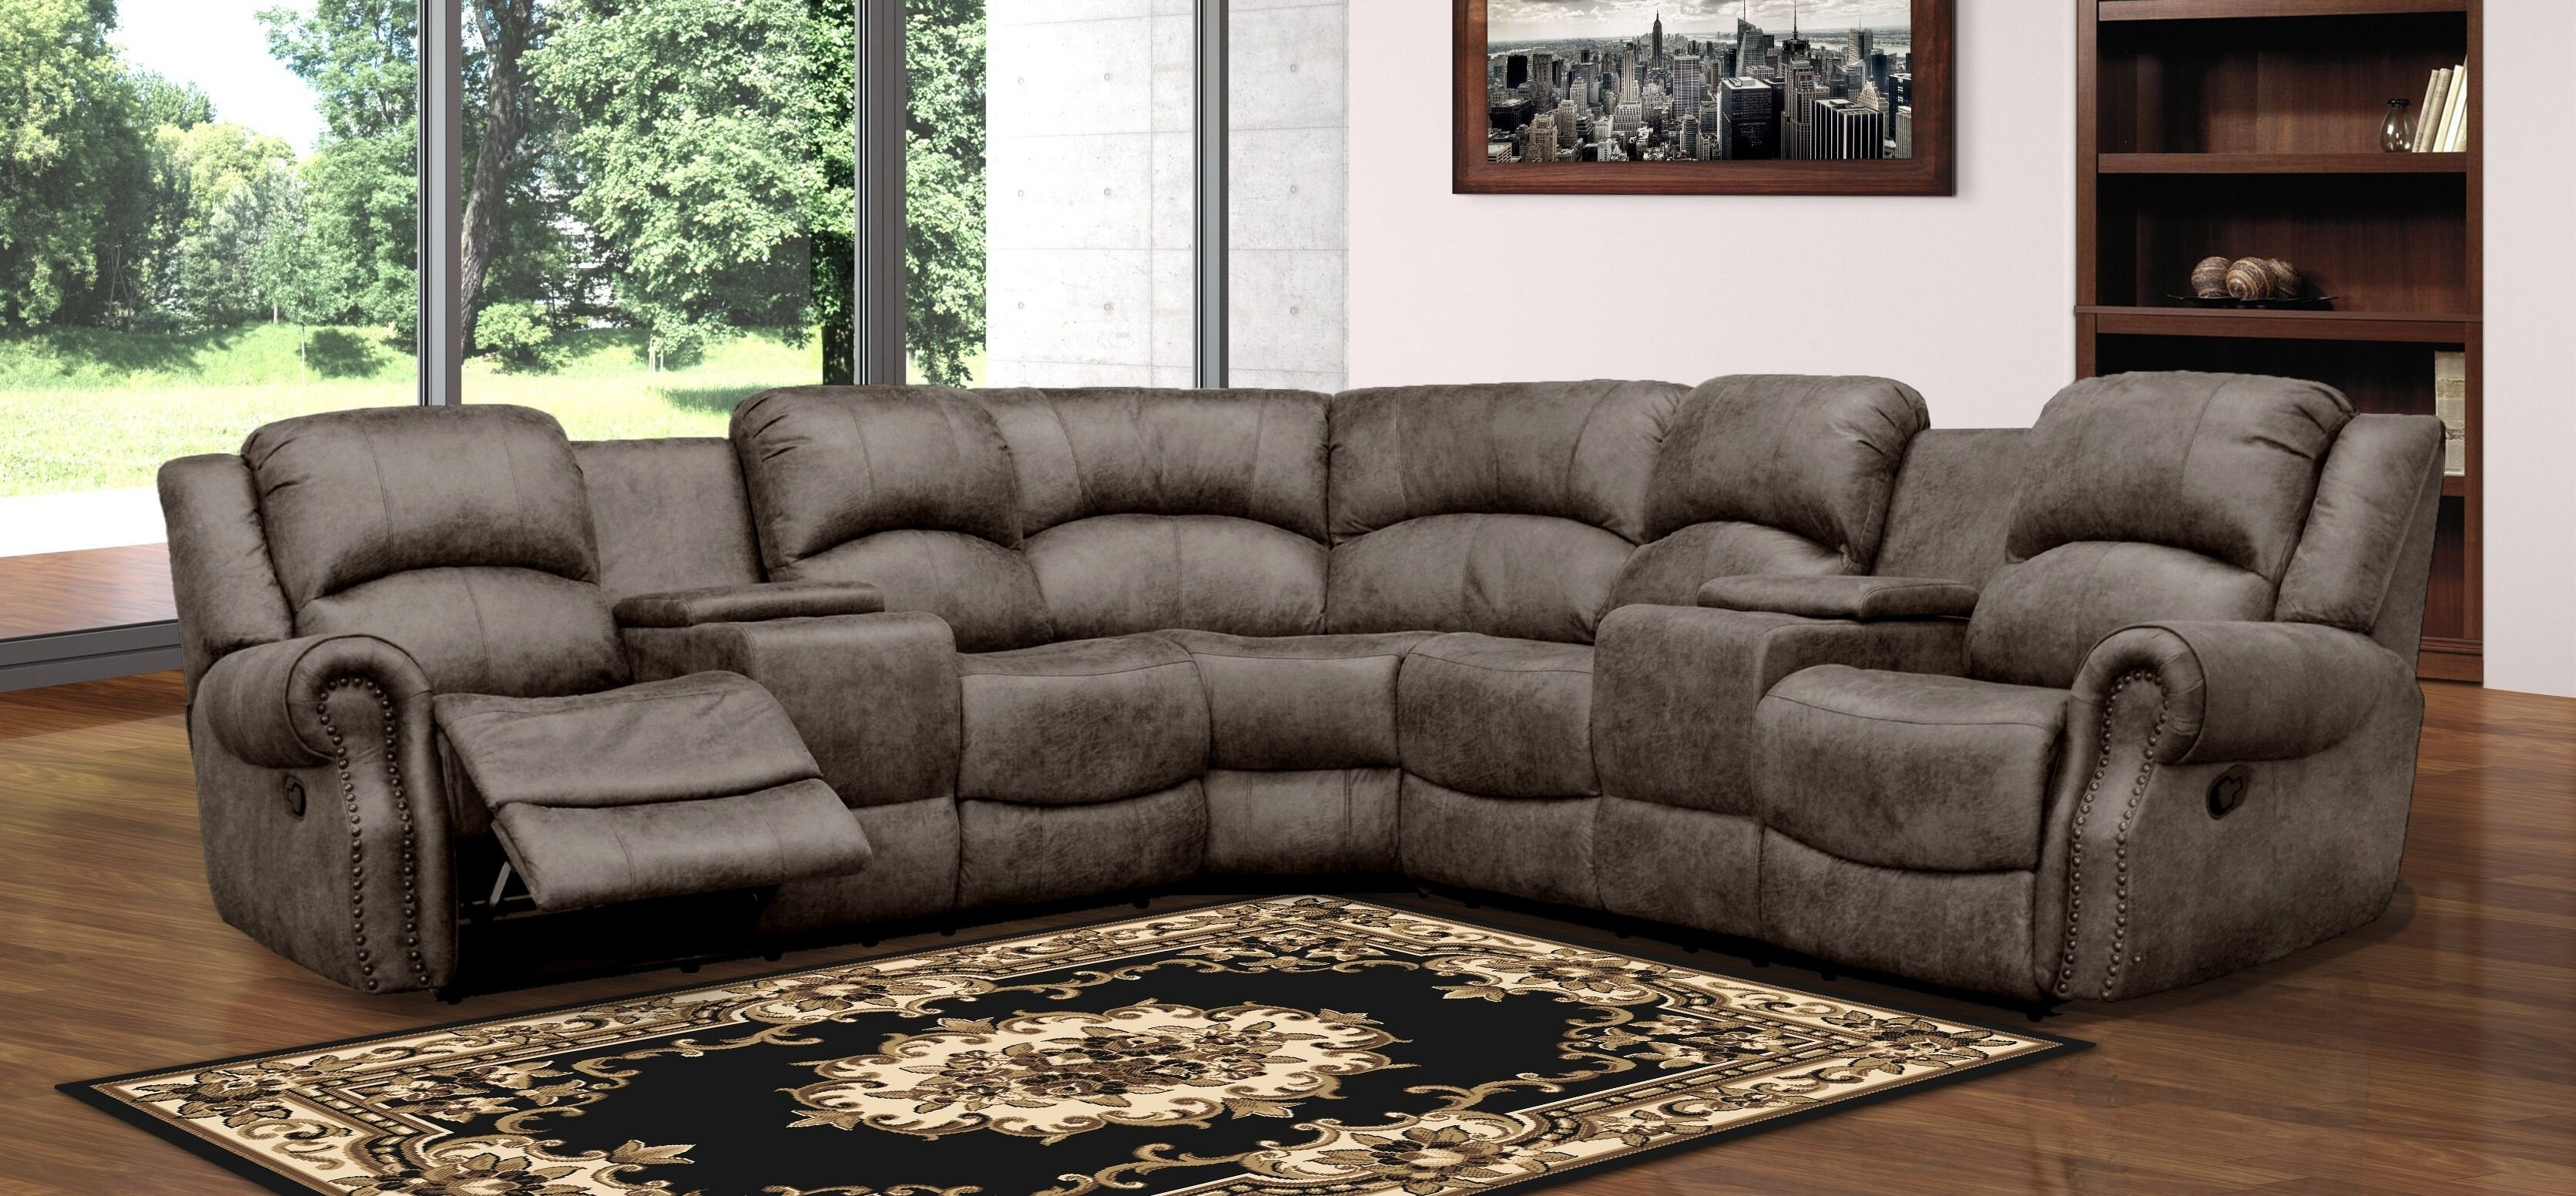 Furniture Clearance Center | Motion Groups Pertaining To Waylon 3 Piece Power Reclining Sectionals (Image 11 of 25)